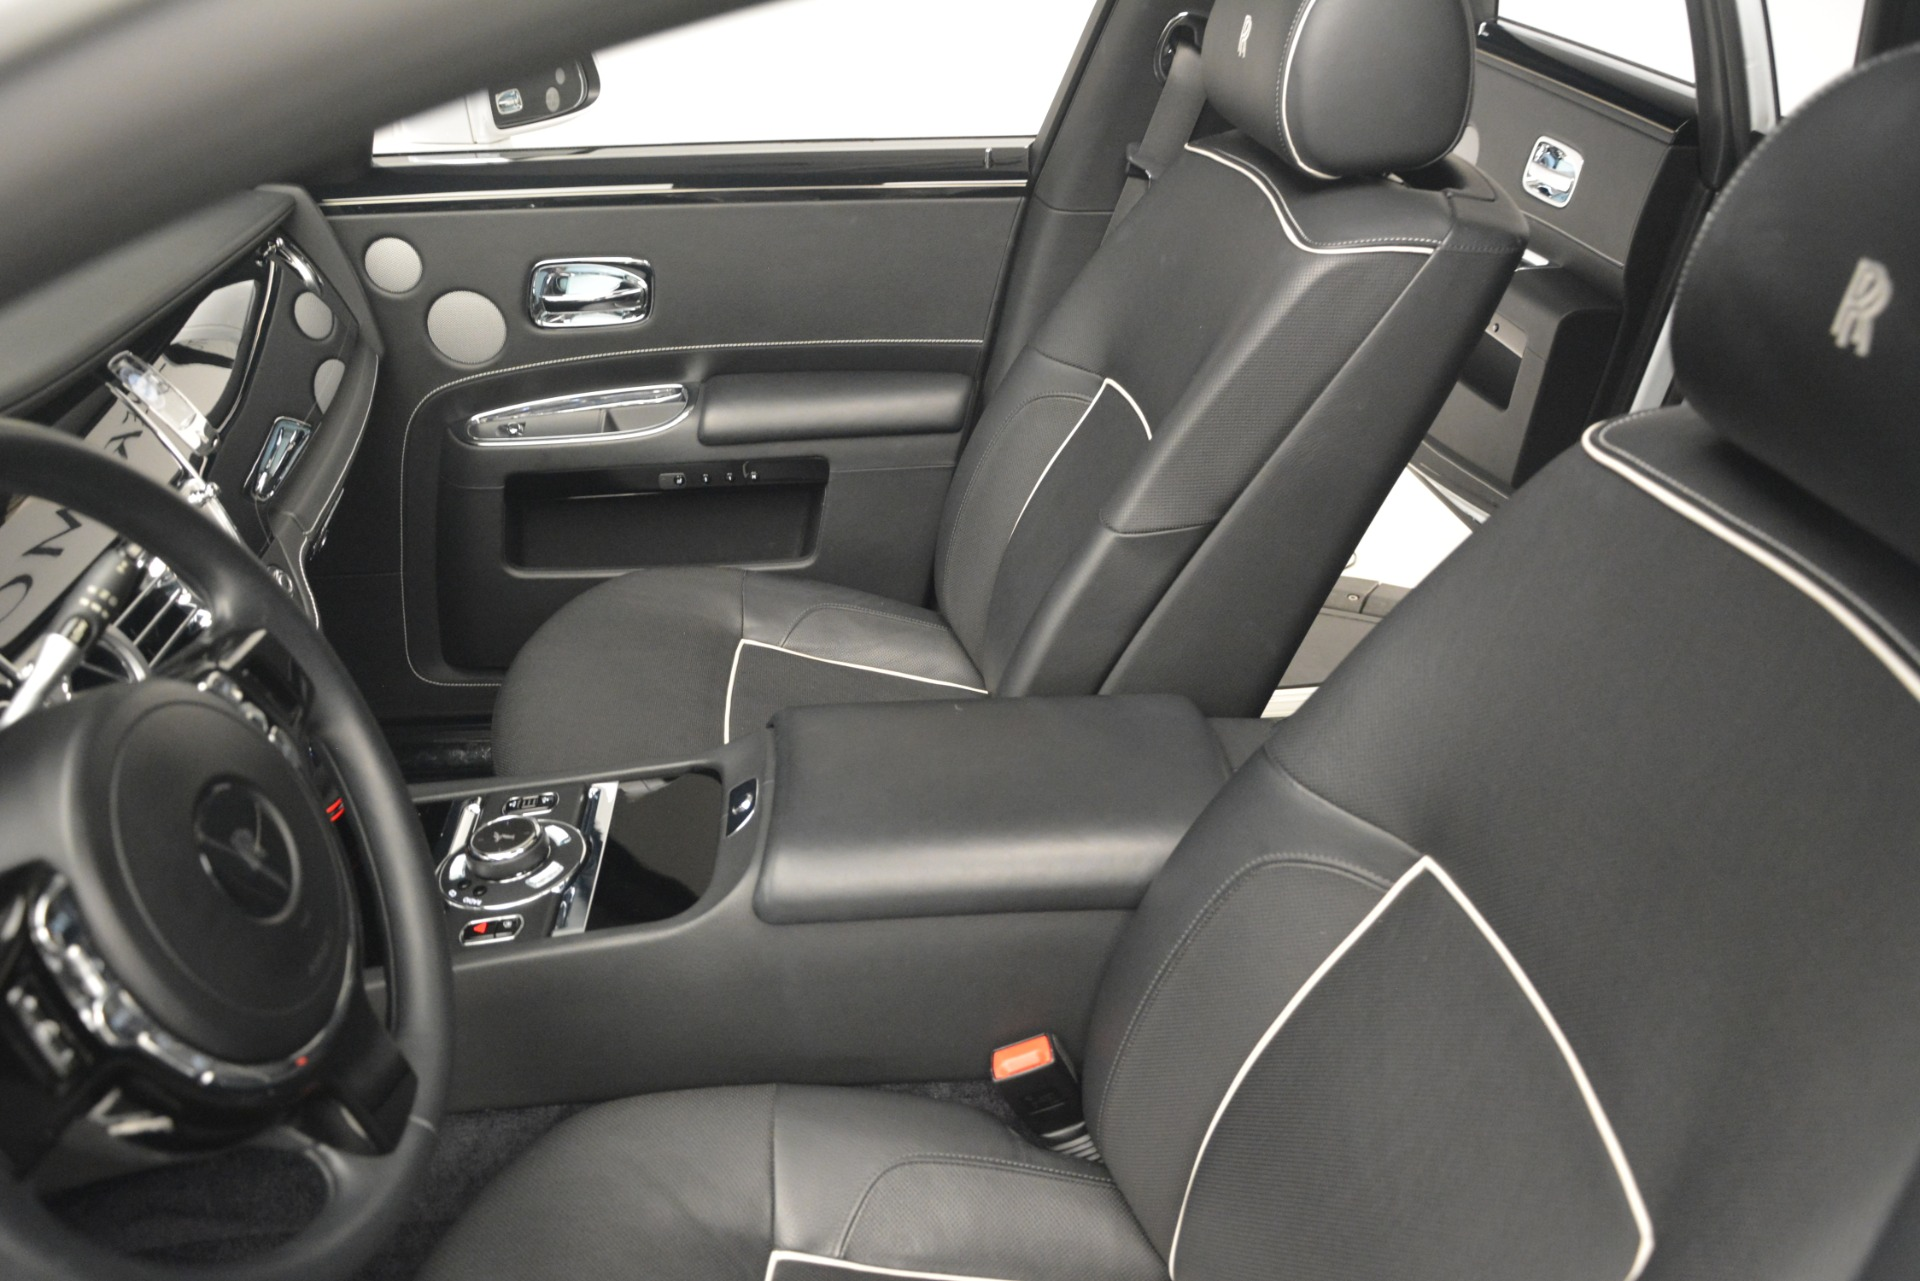 Used 2014 Rolls-Royce Ghost V-Spec For Sale In Westport, CT 2989_p17